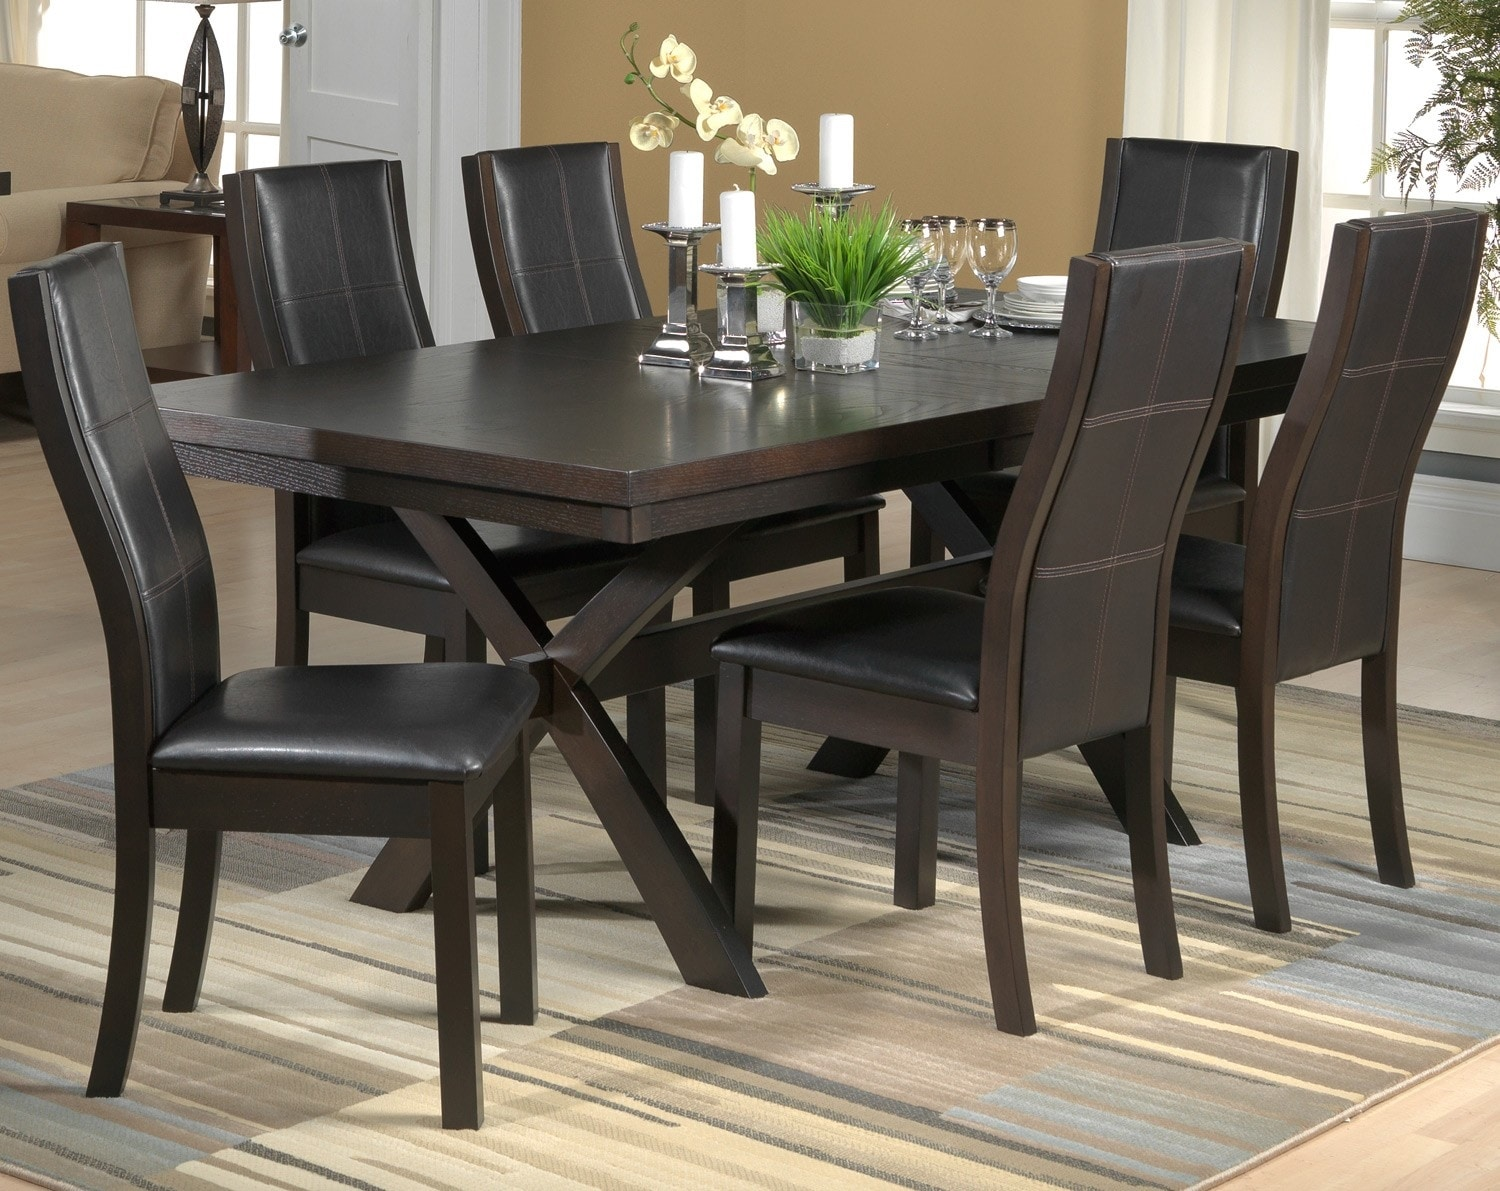 Grethell 7 Piece Dining Room Set